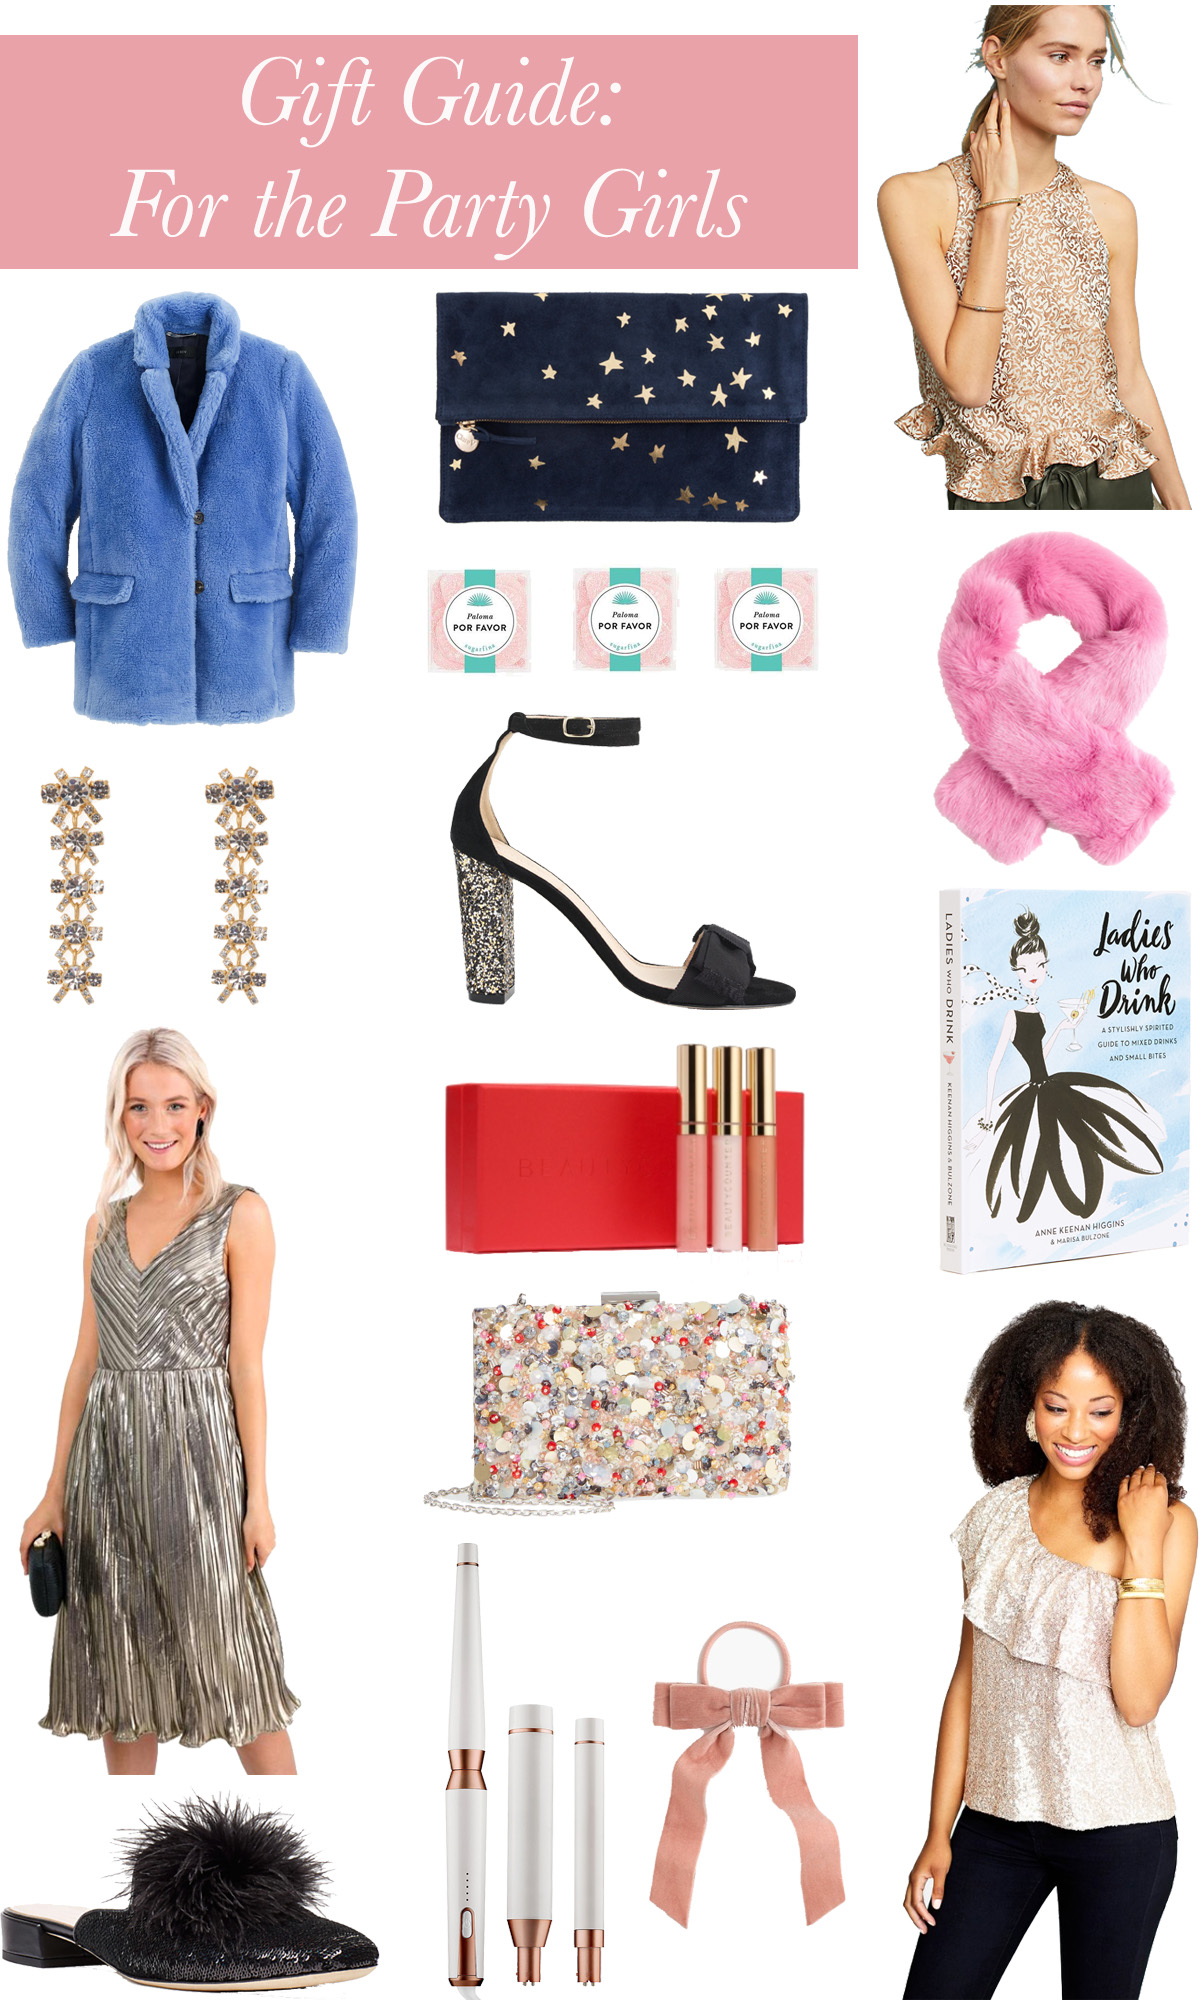 A Roundup of the Best Gifts for Girls that like to Hit the Town // Gift Guide: For the Party Girls // Rhyme & Reason